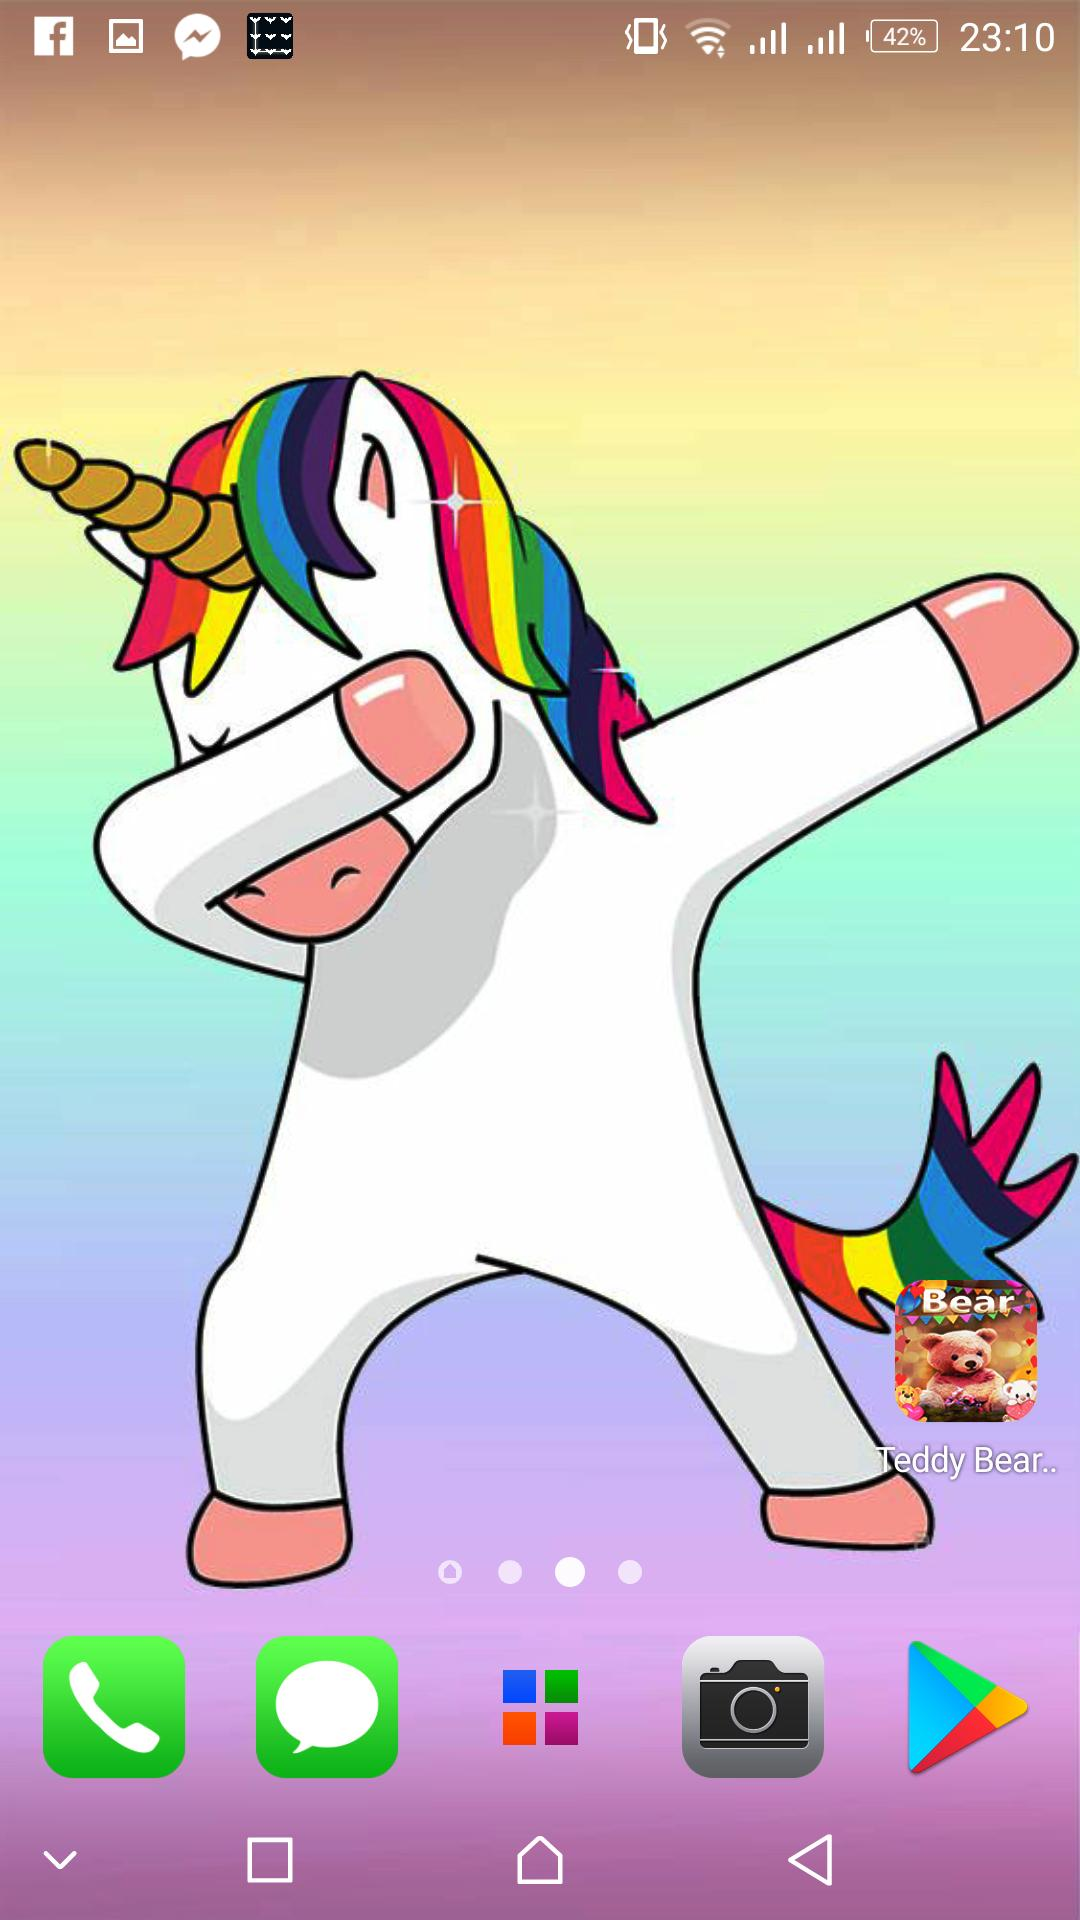 Unicorn Dab wallpapers Cute backgrounds for Android - APK ...